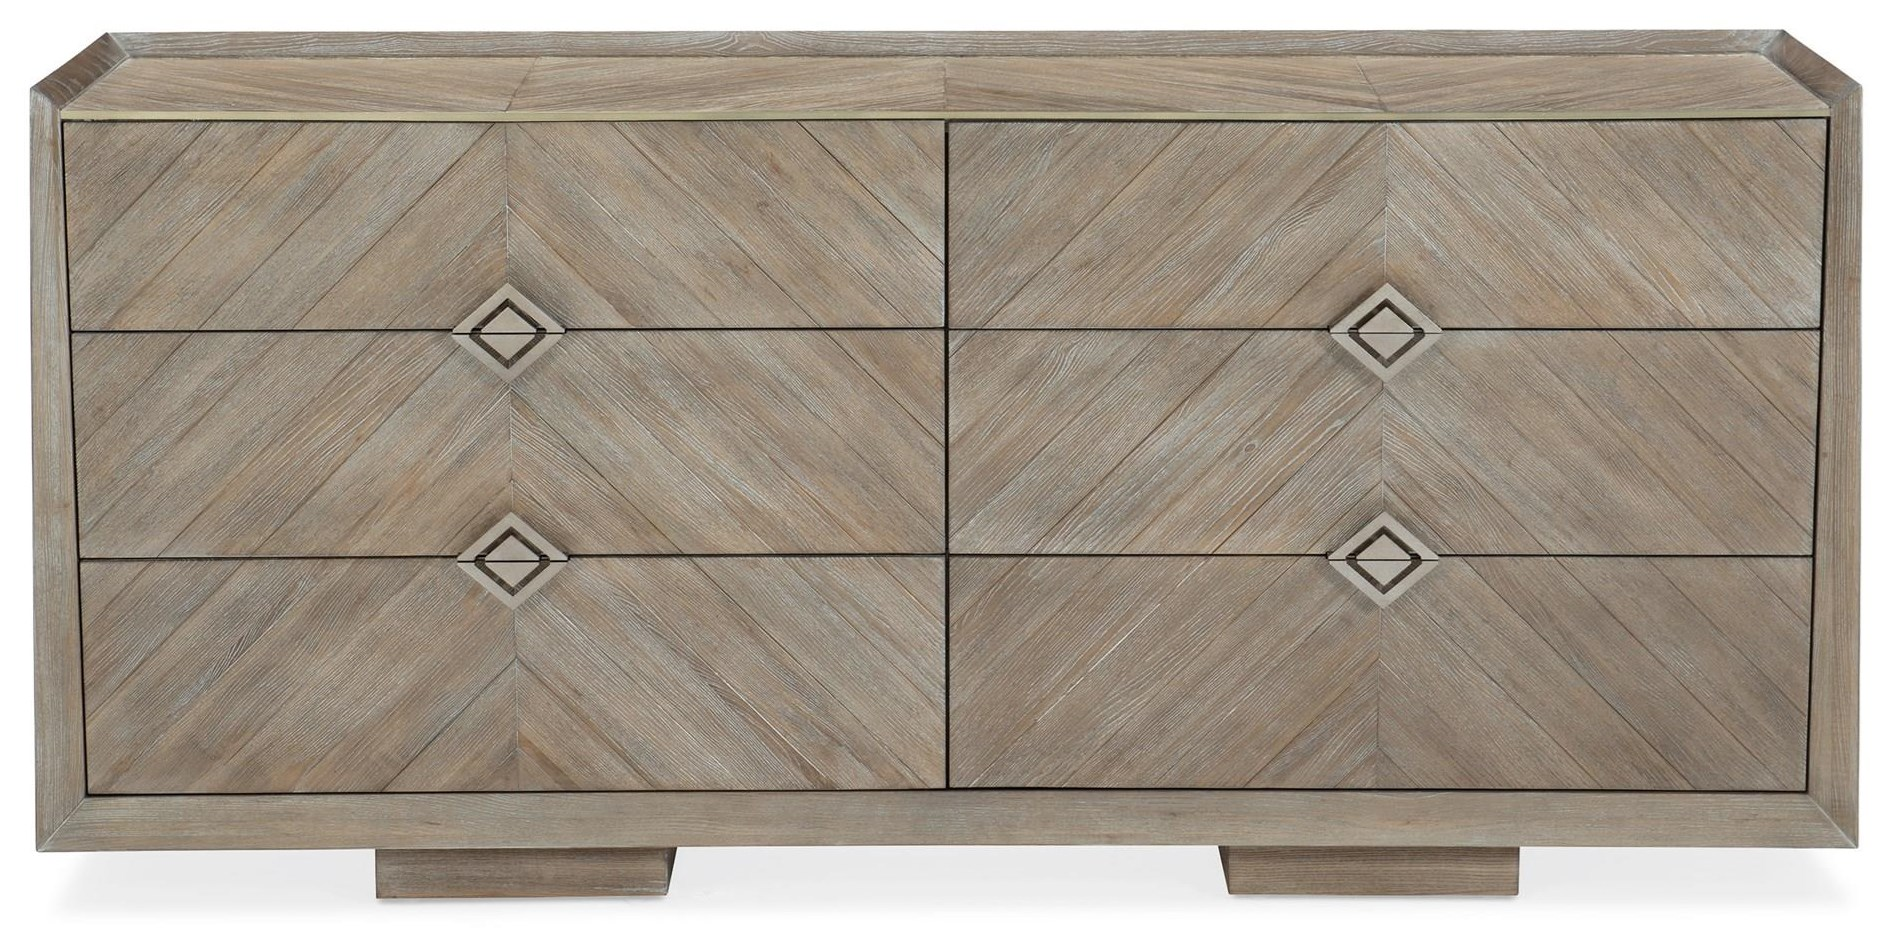 Caracole Classic Naturally Dresser by Caracole at Baer's Furniture